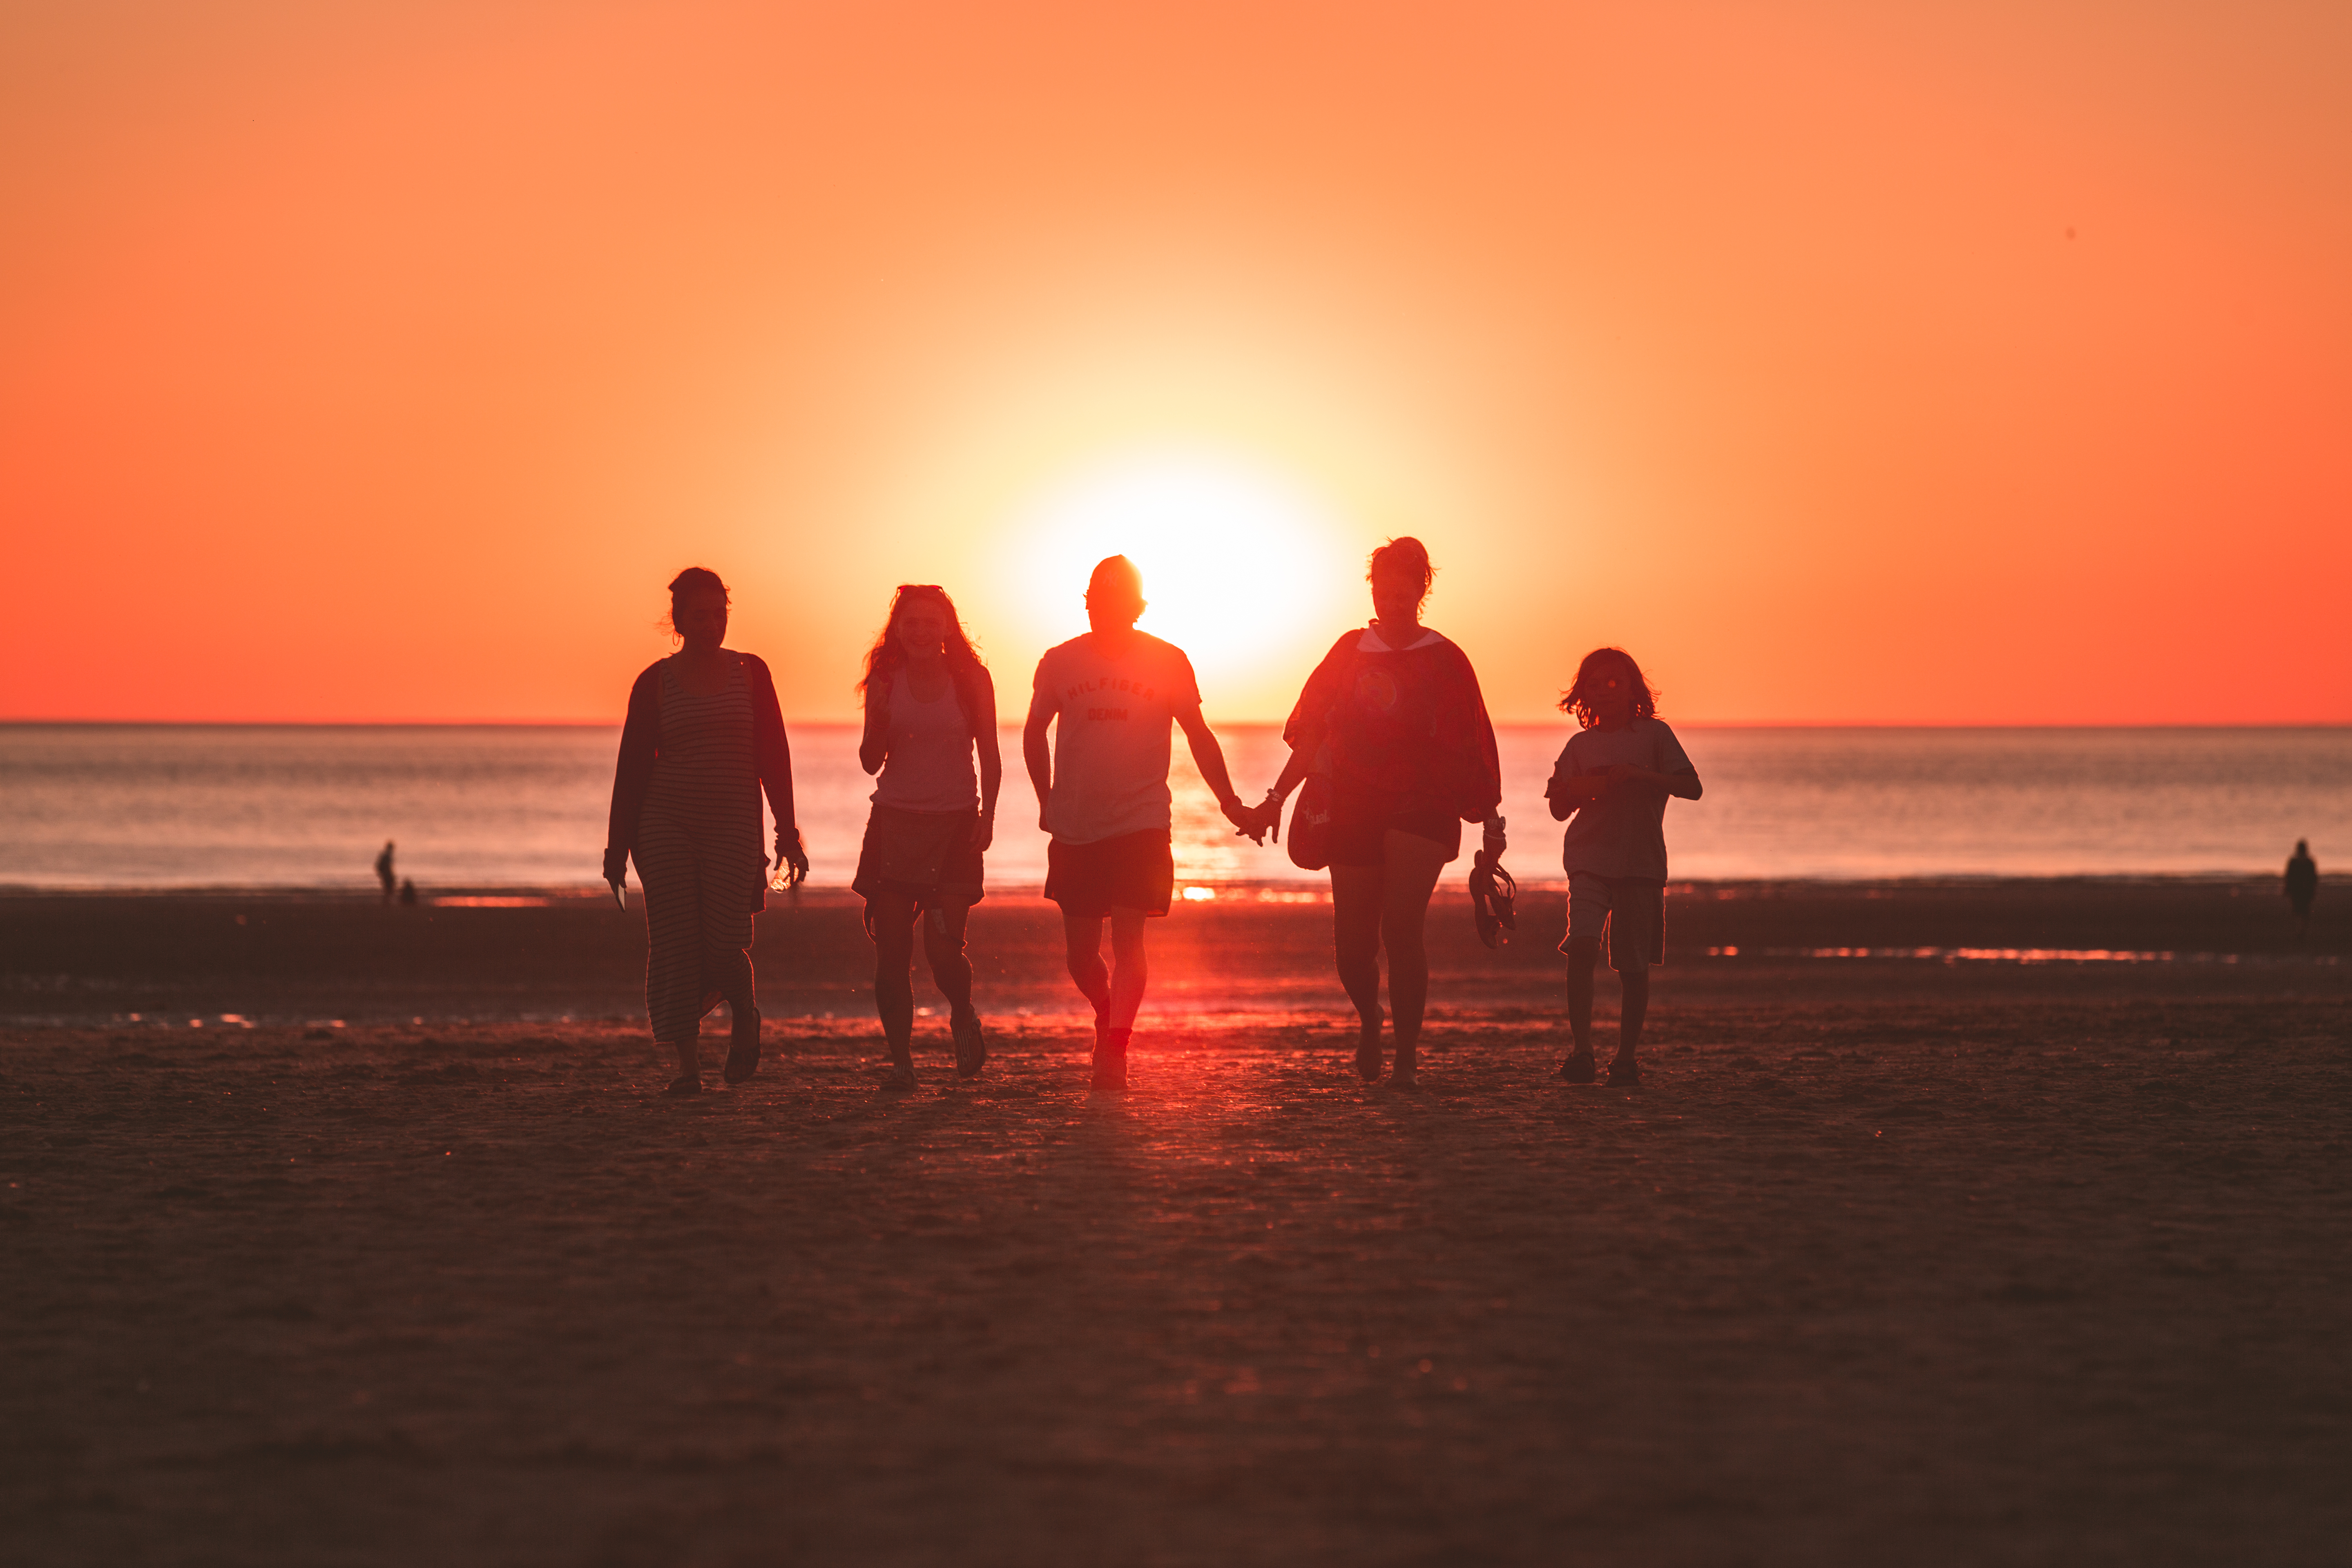 multi-generational travel family mebers walking along the beach at sunset